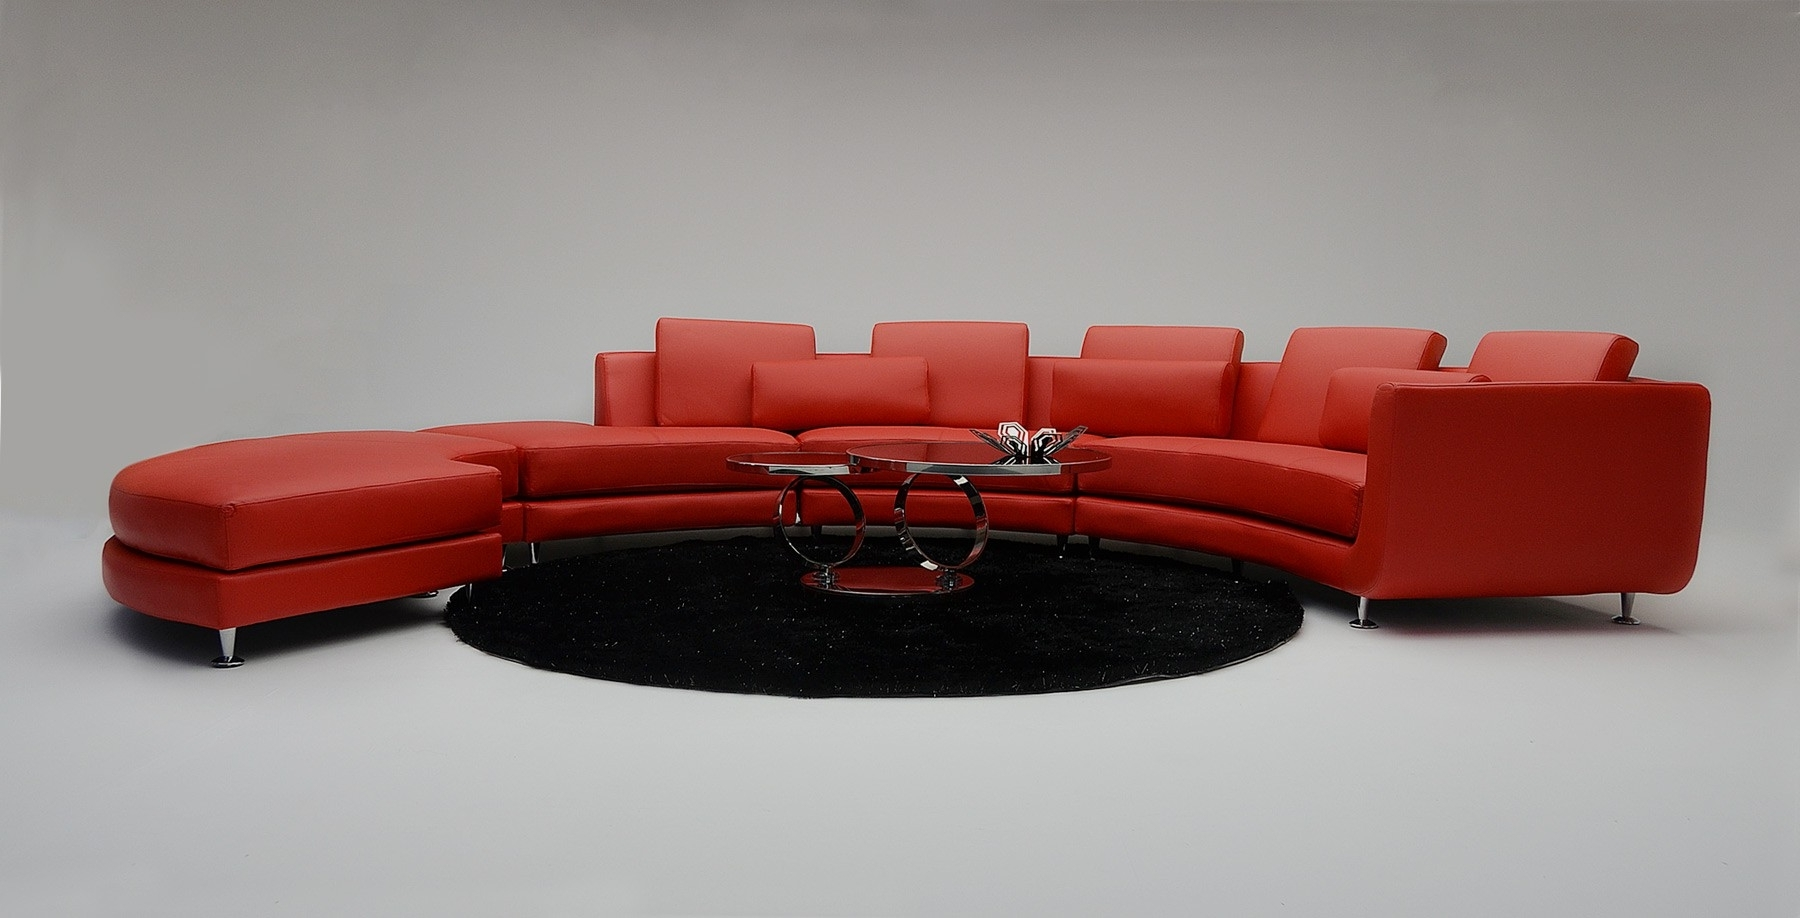 2017 100X100 Sectional Sofas With Furniture : Sectional Sofa 100 X 100 Sectional Sofa $250 Sectional (View 8 of 15)